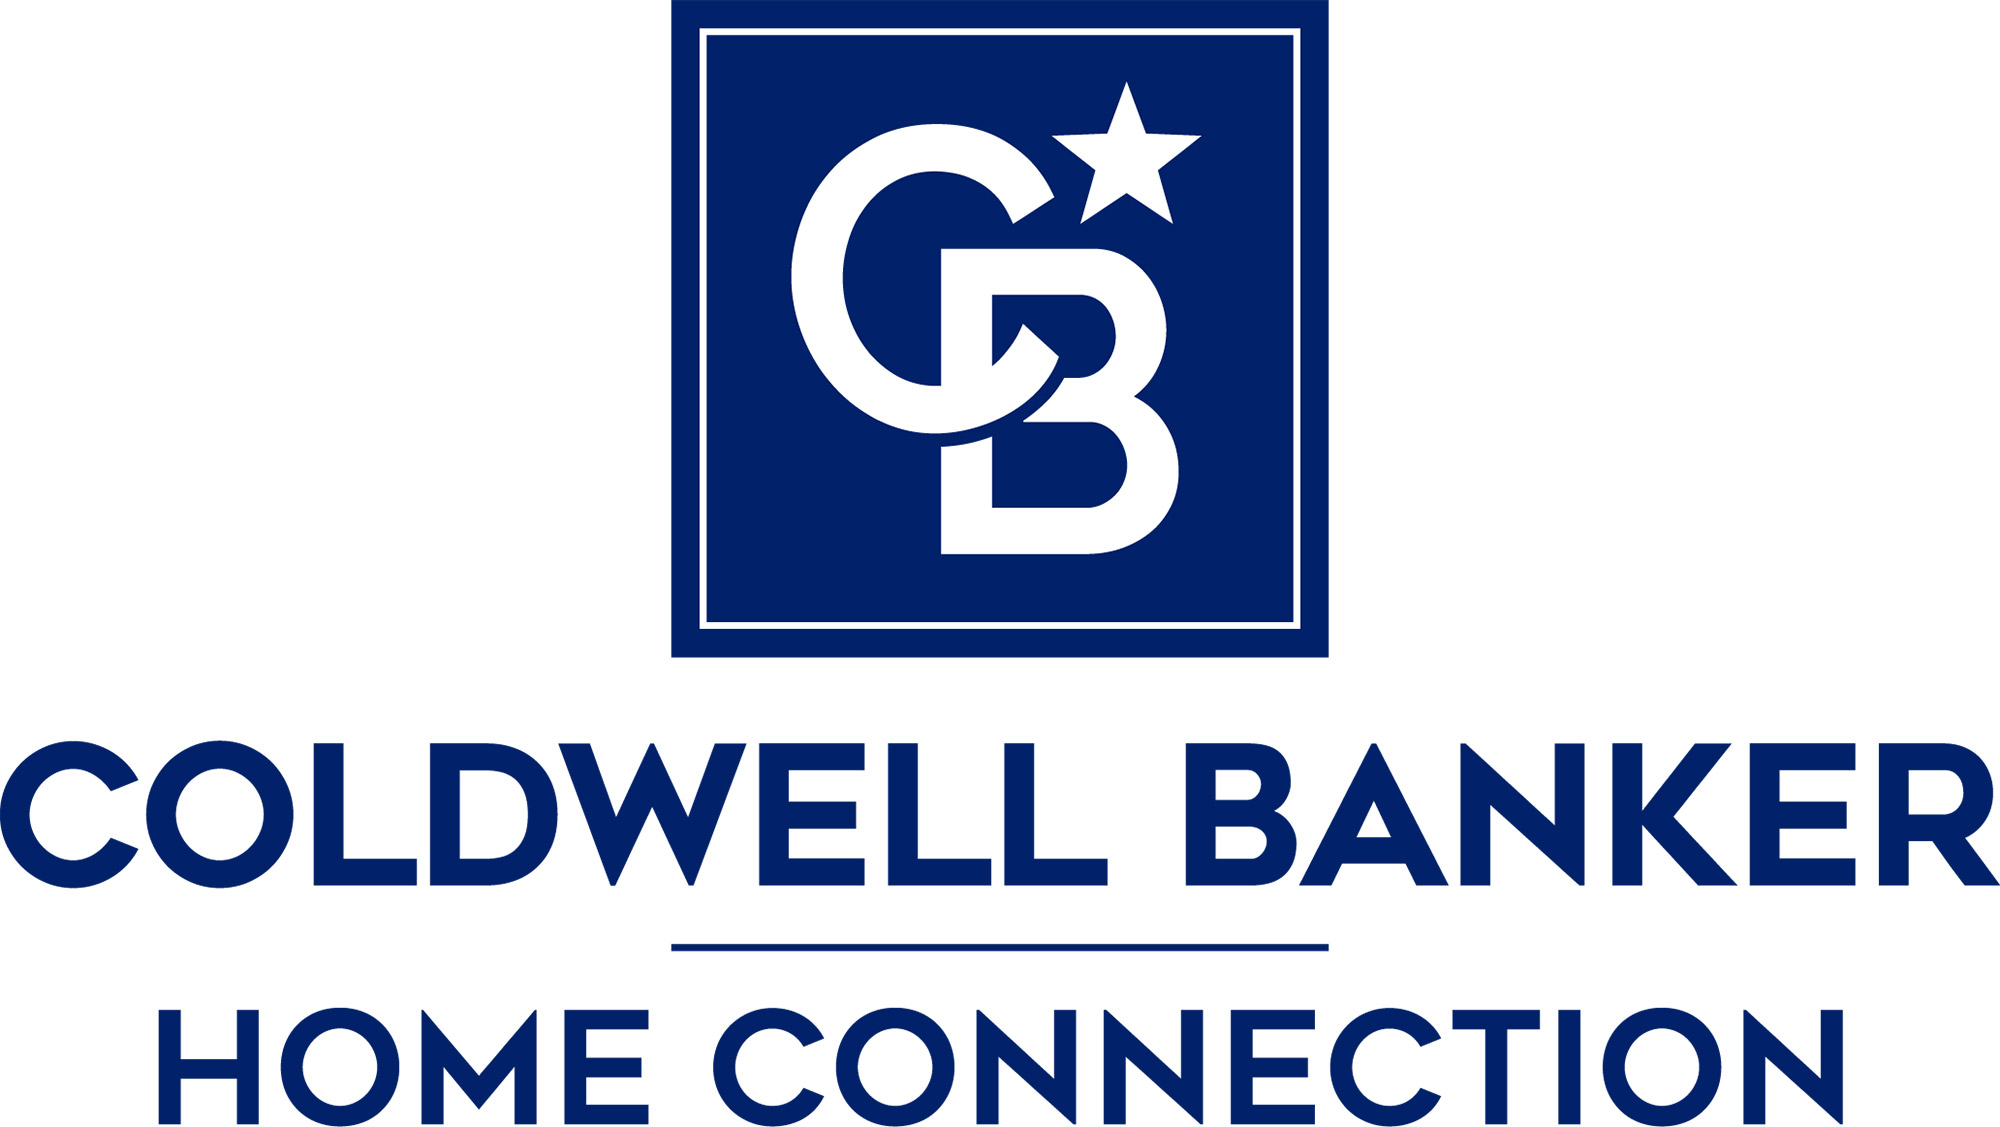 Lynn Johnson - Coldwell Banker Home Connection Logo